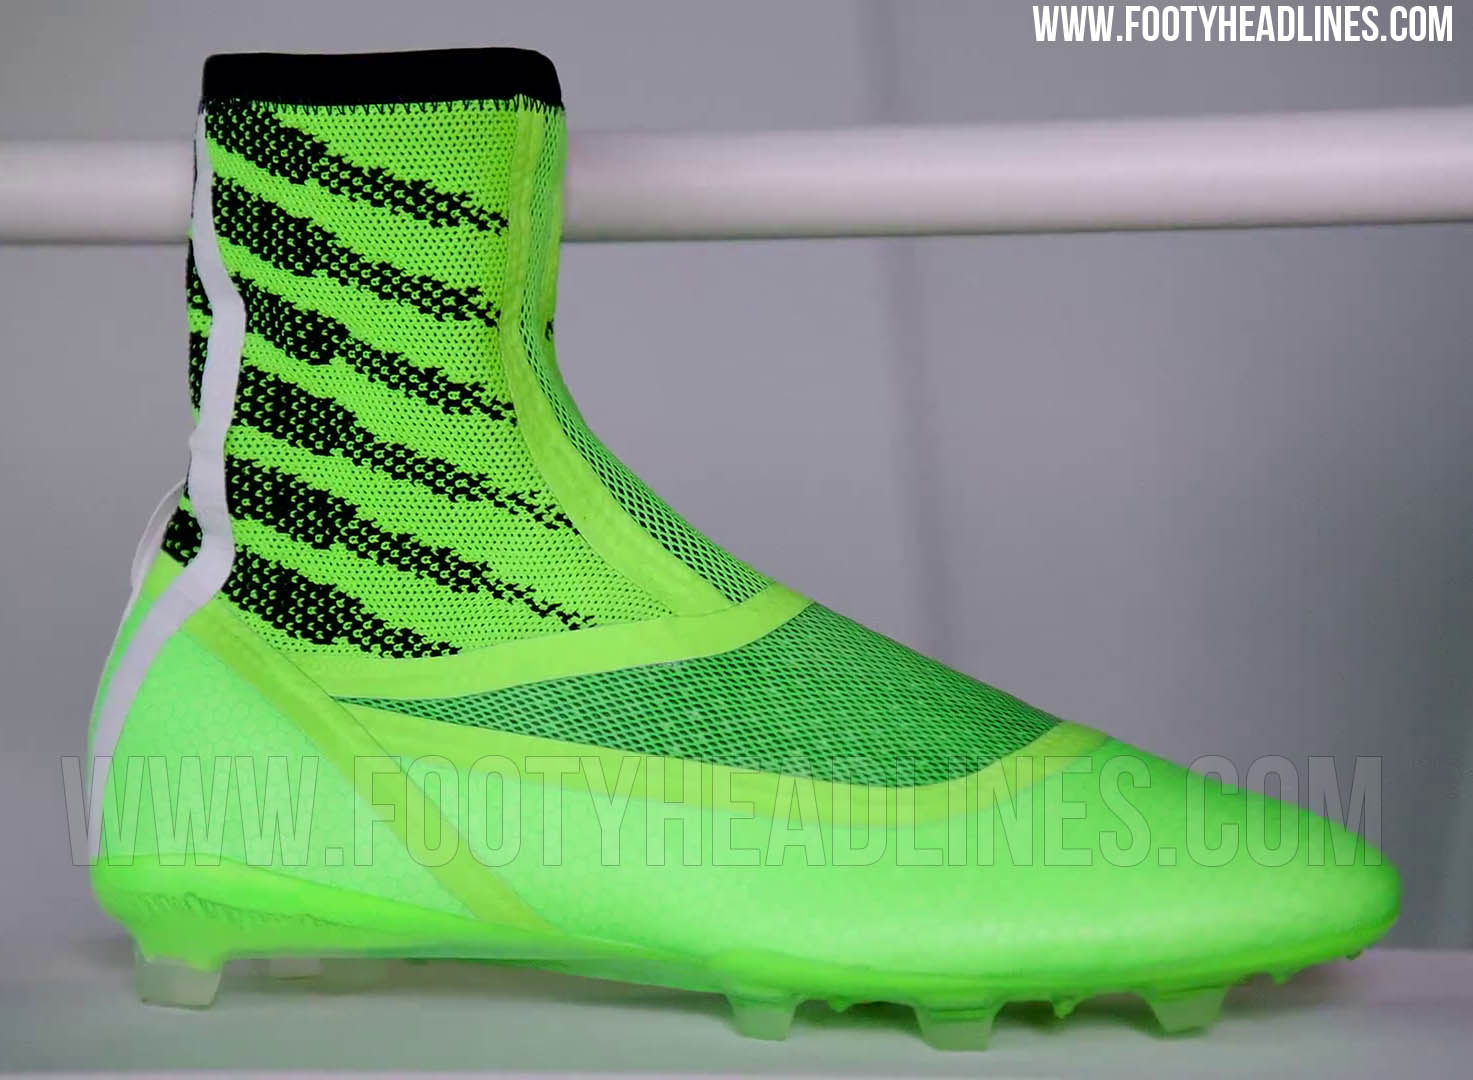 adidas adizero fs boots revealed footy headlines. Black Bedroom Furniture Sets. Home Design Ideas